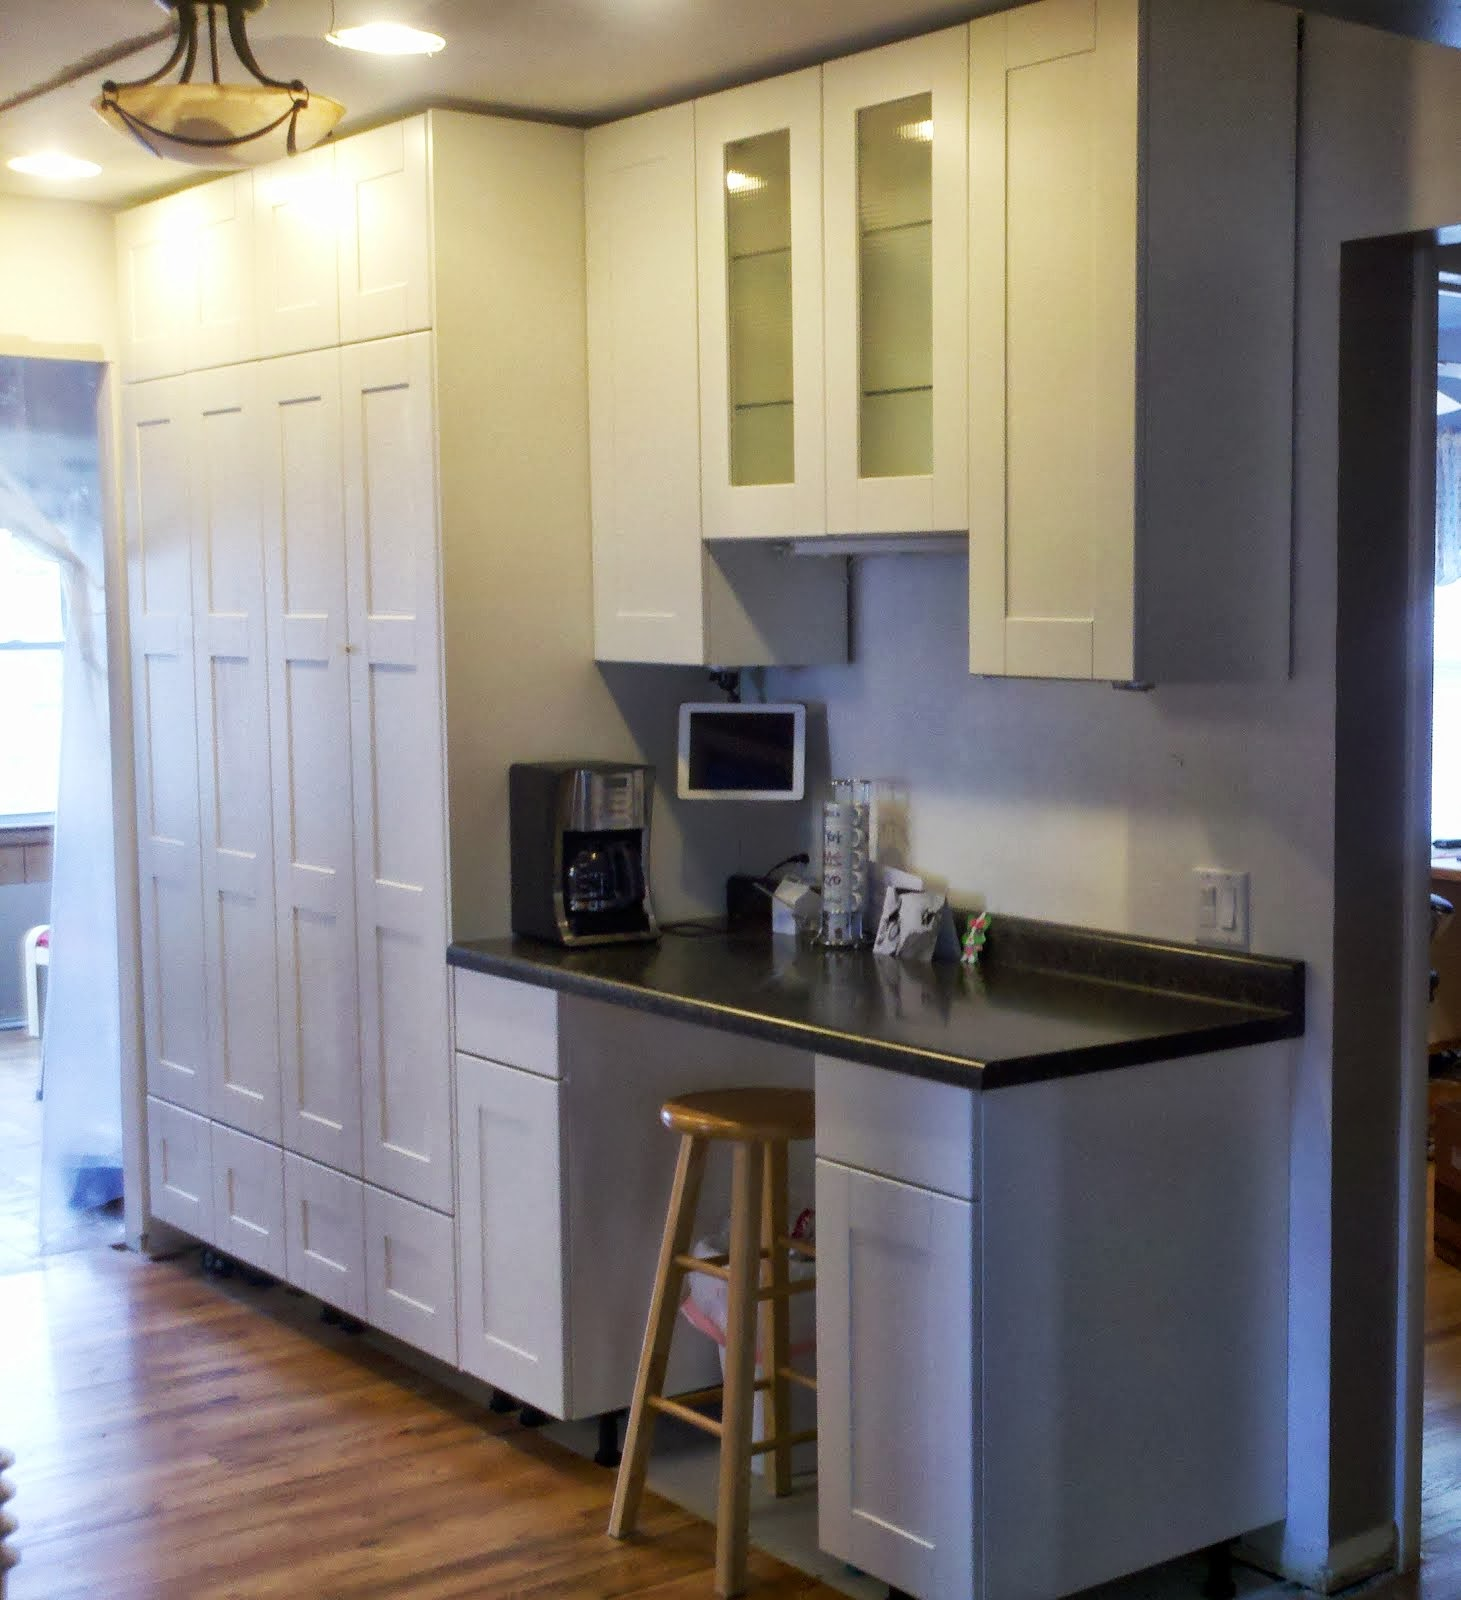 Kitchen Cabinets To The Ceiling Inspiration Howto Extend Tall Akurum Cabinet Base Unit For Floor To Ceiling . Review